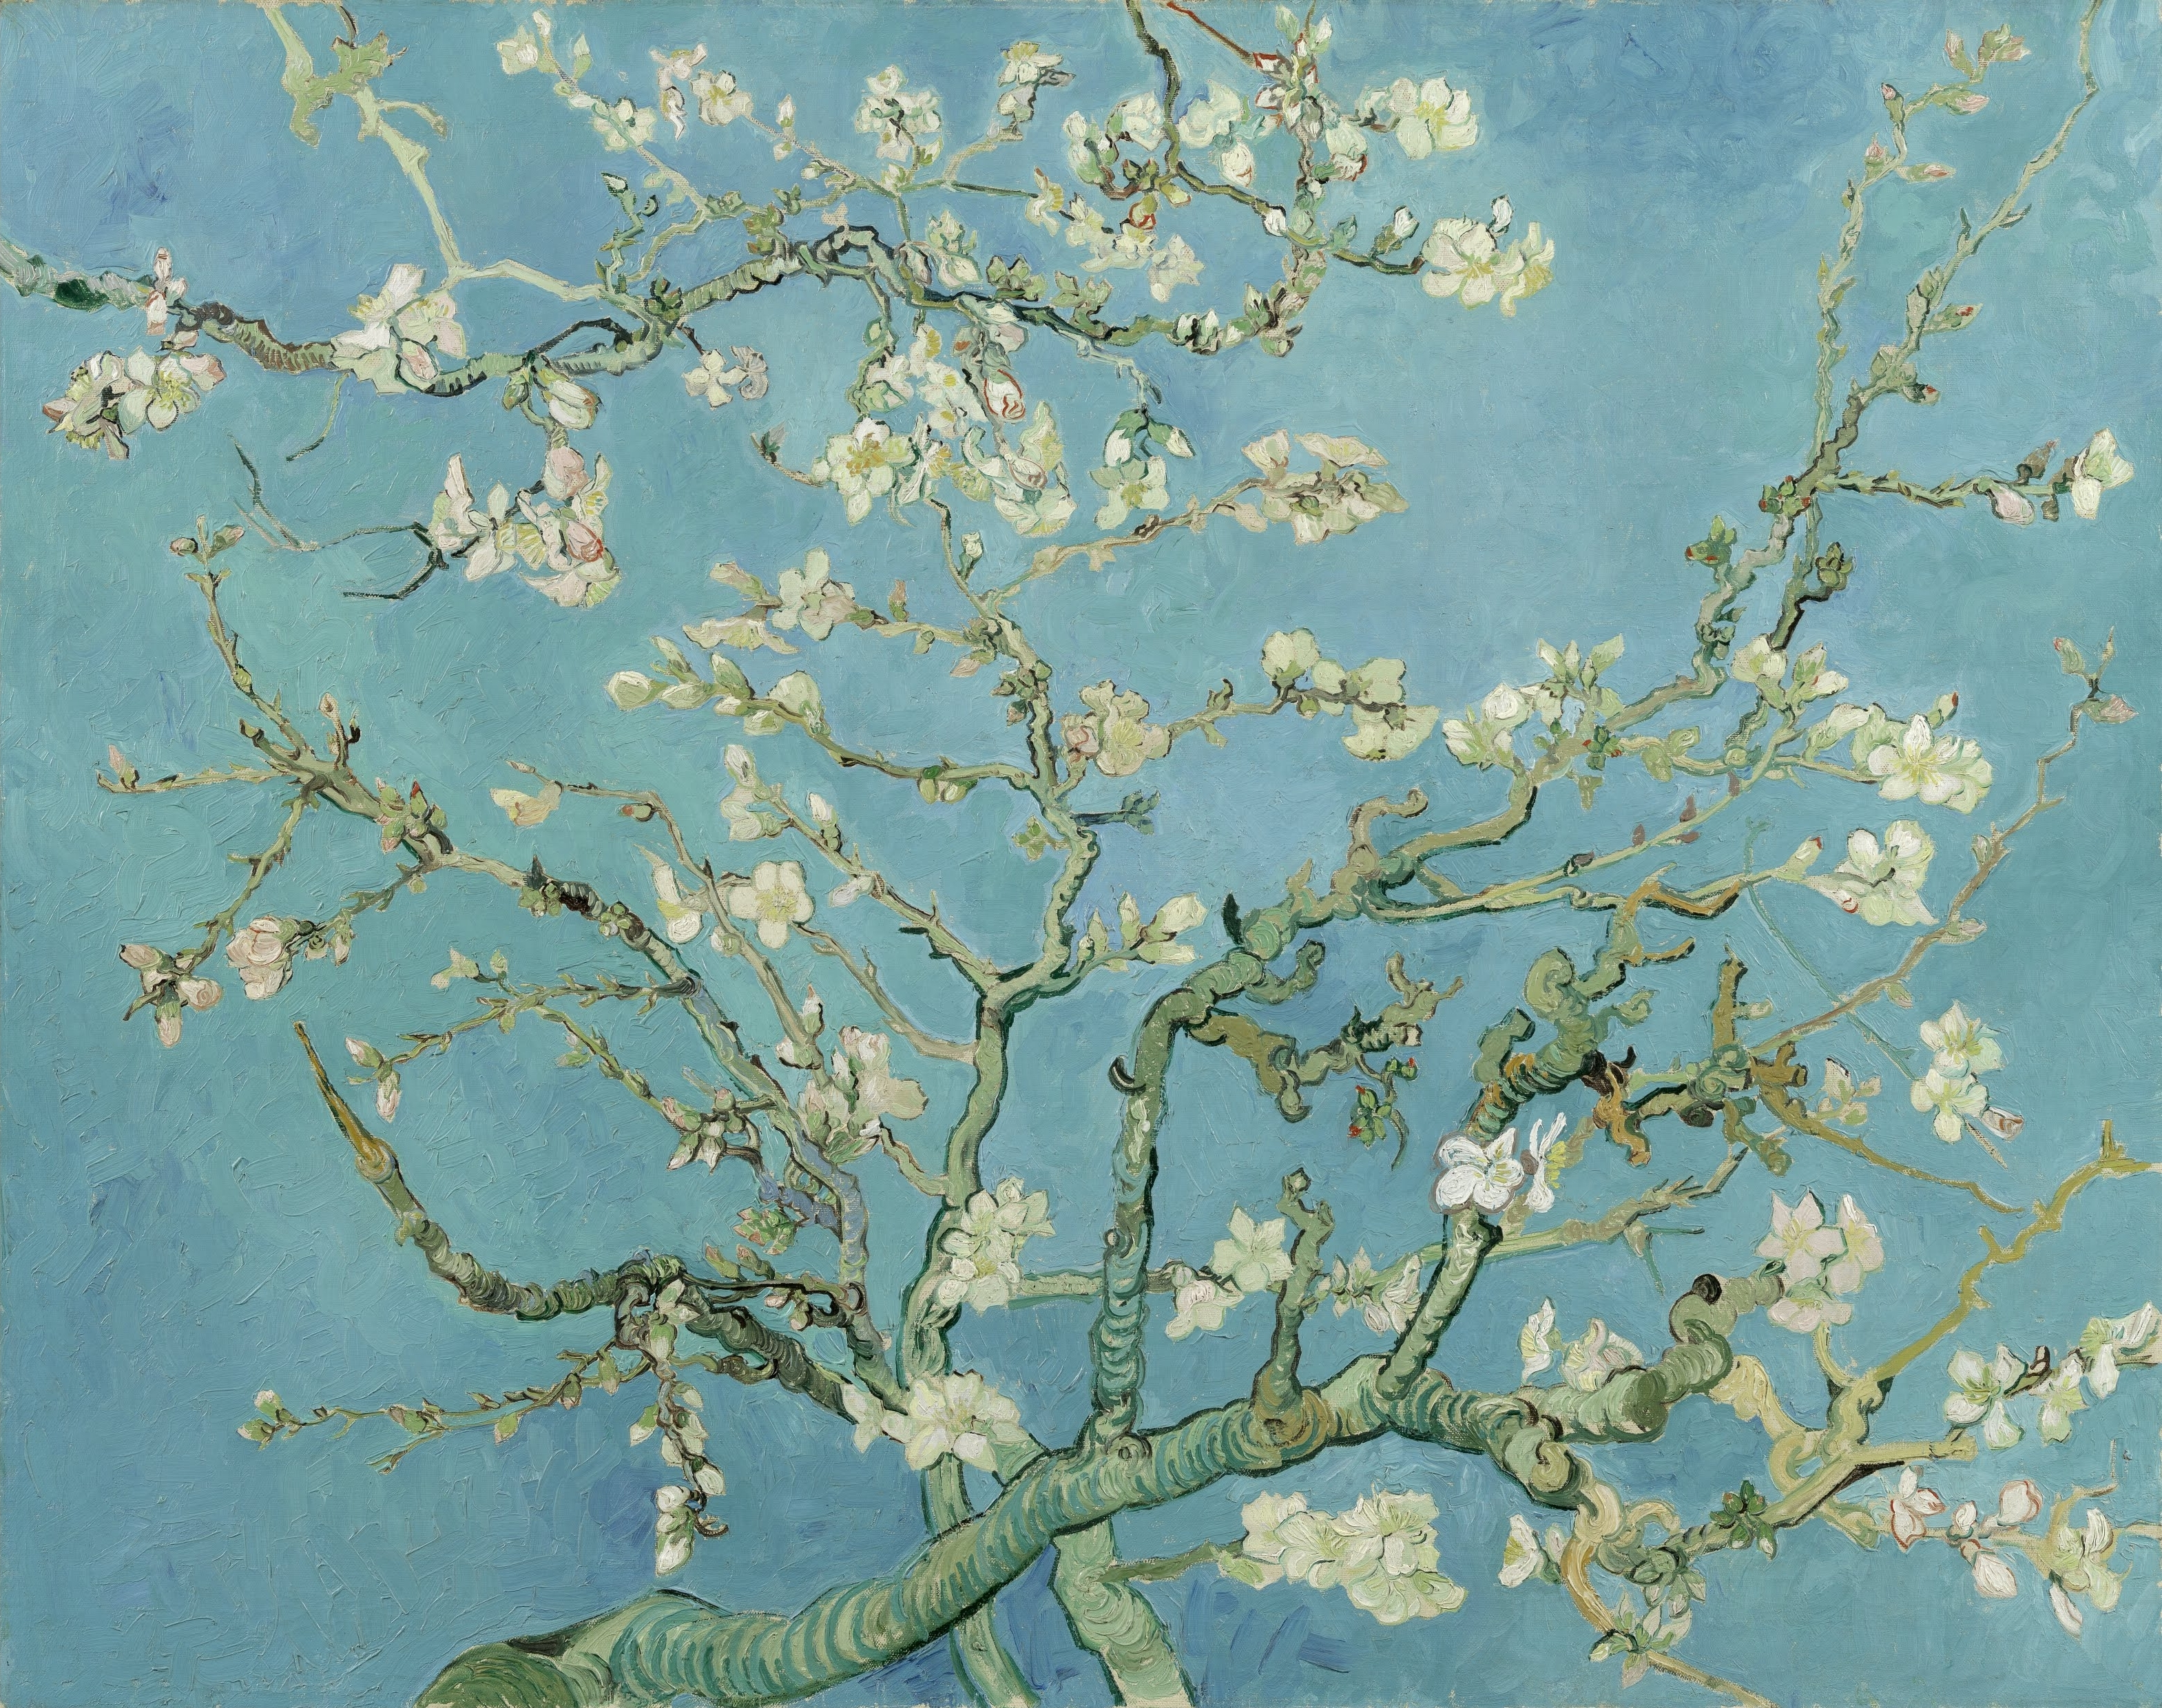 File:vincent Van Gogh – Almond Blossom – Google Art Project In Widely Used Almond Blossoms Vincent Van Gogh Wall Art (View 12 of 15)